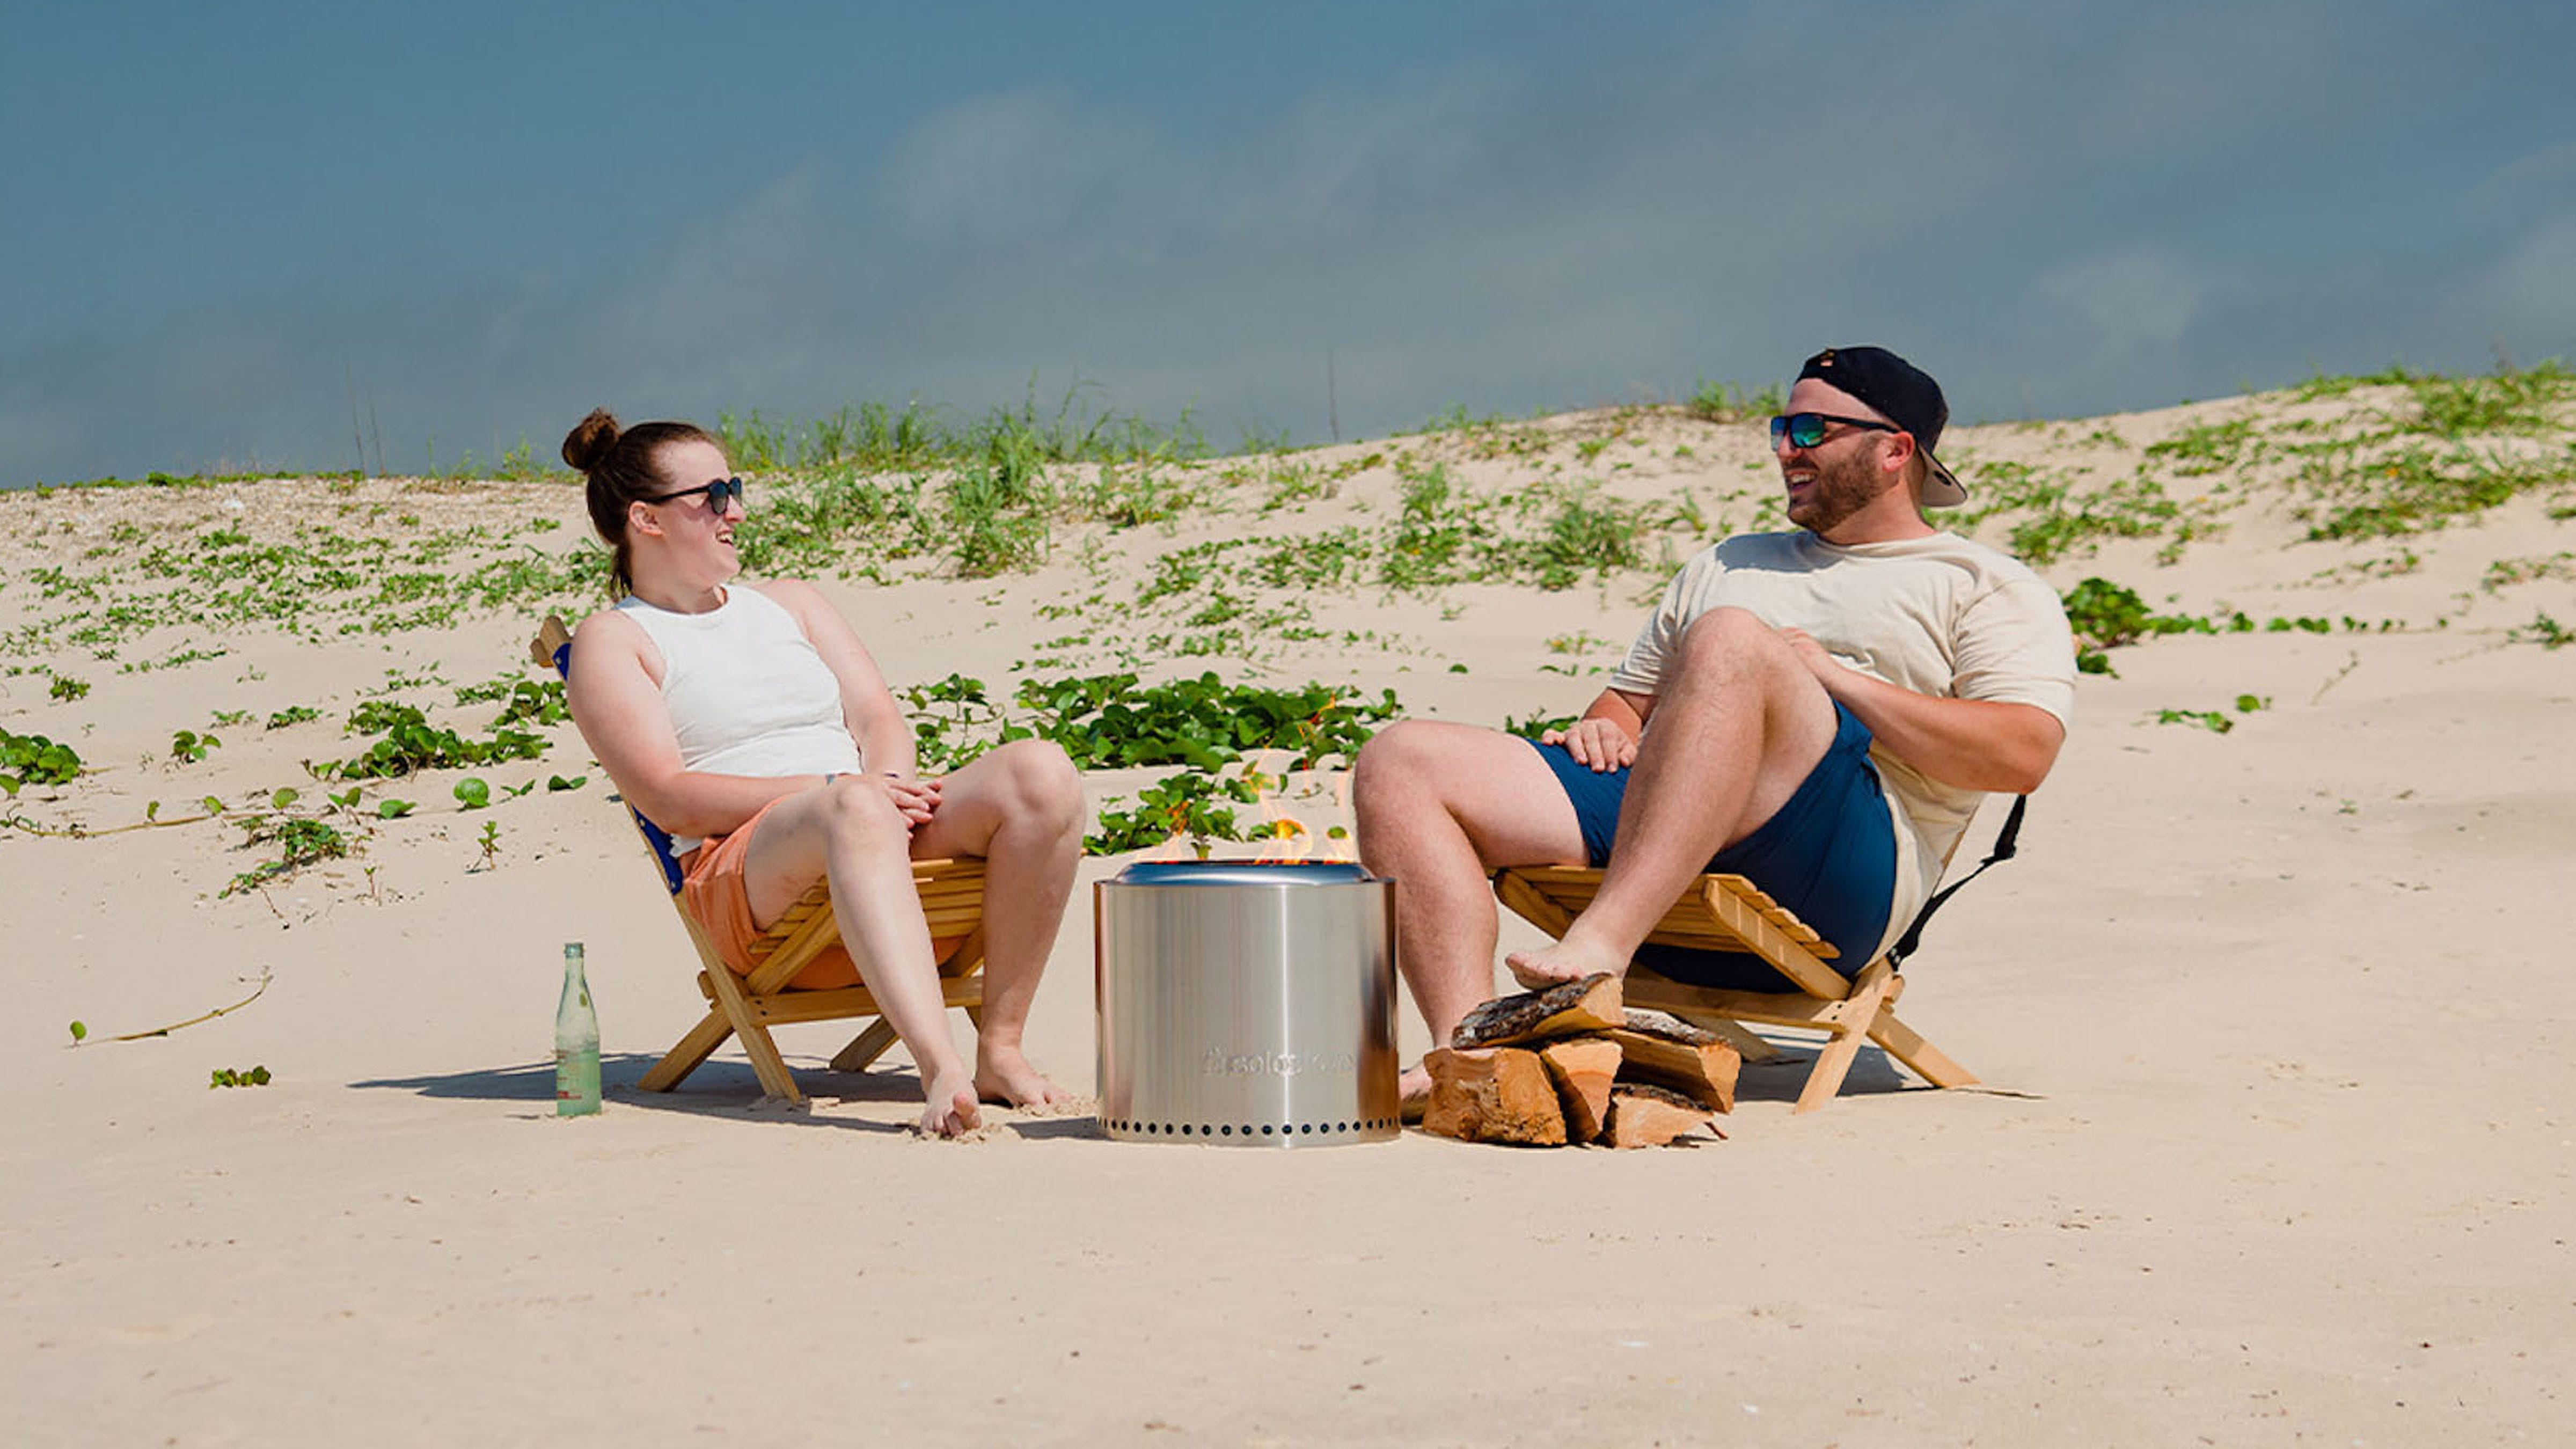 The Solo Stove fire pit is one of our favorite pandemic purchases—and it's 25% off